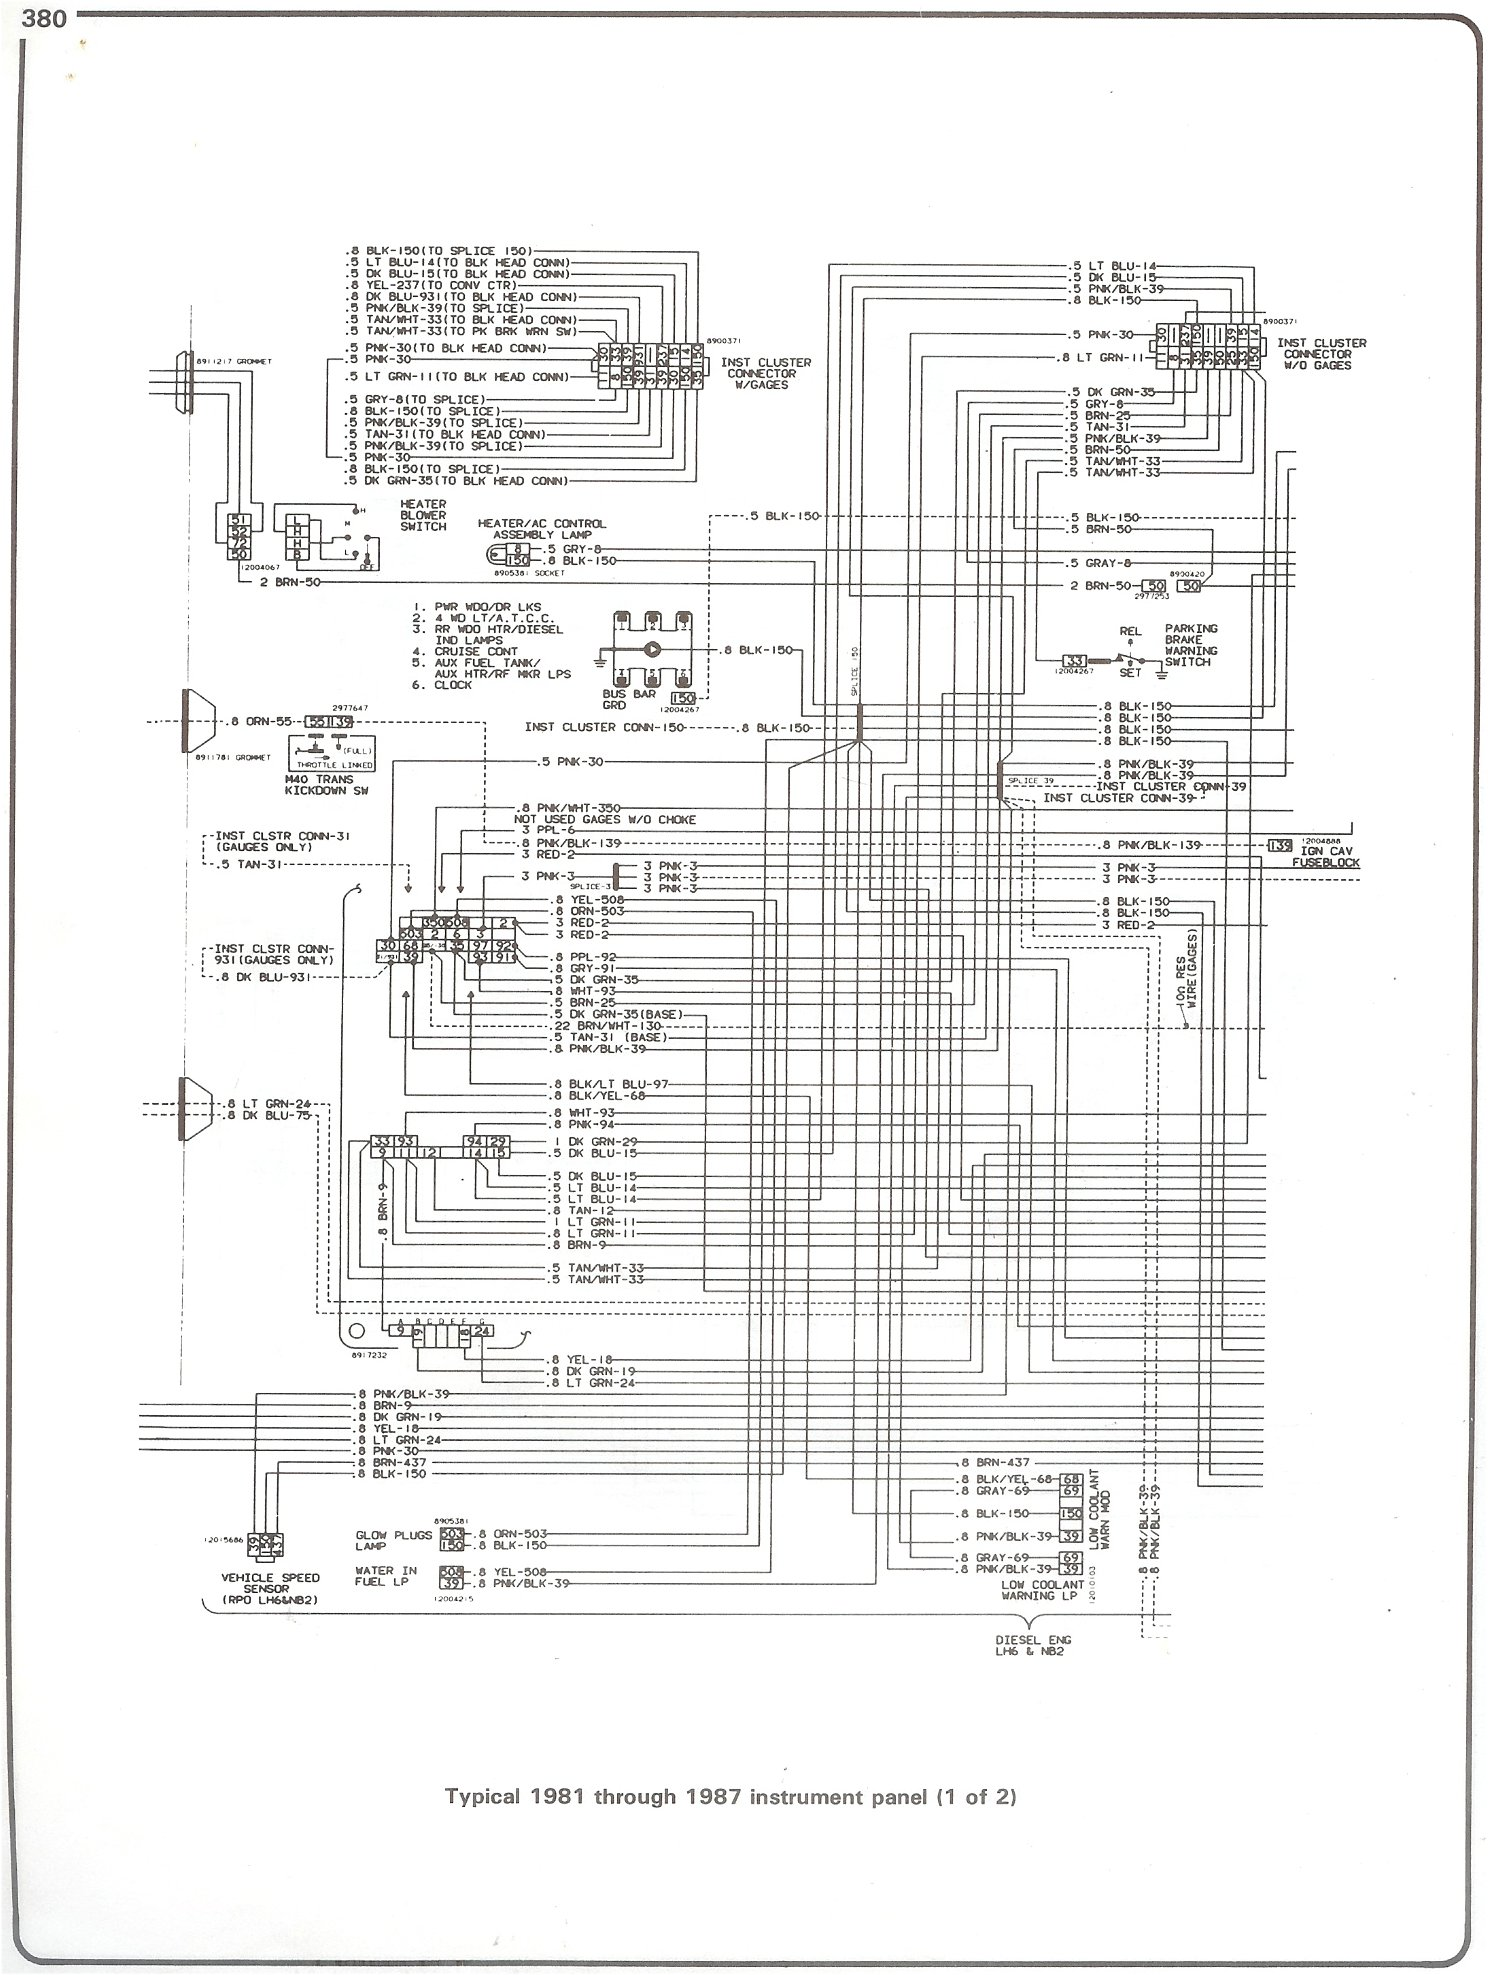 83 suburban wiring diagram php complete 73 87 wiring diagrams 81 87 instrument panel page 1